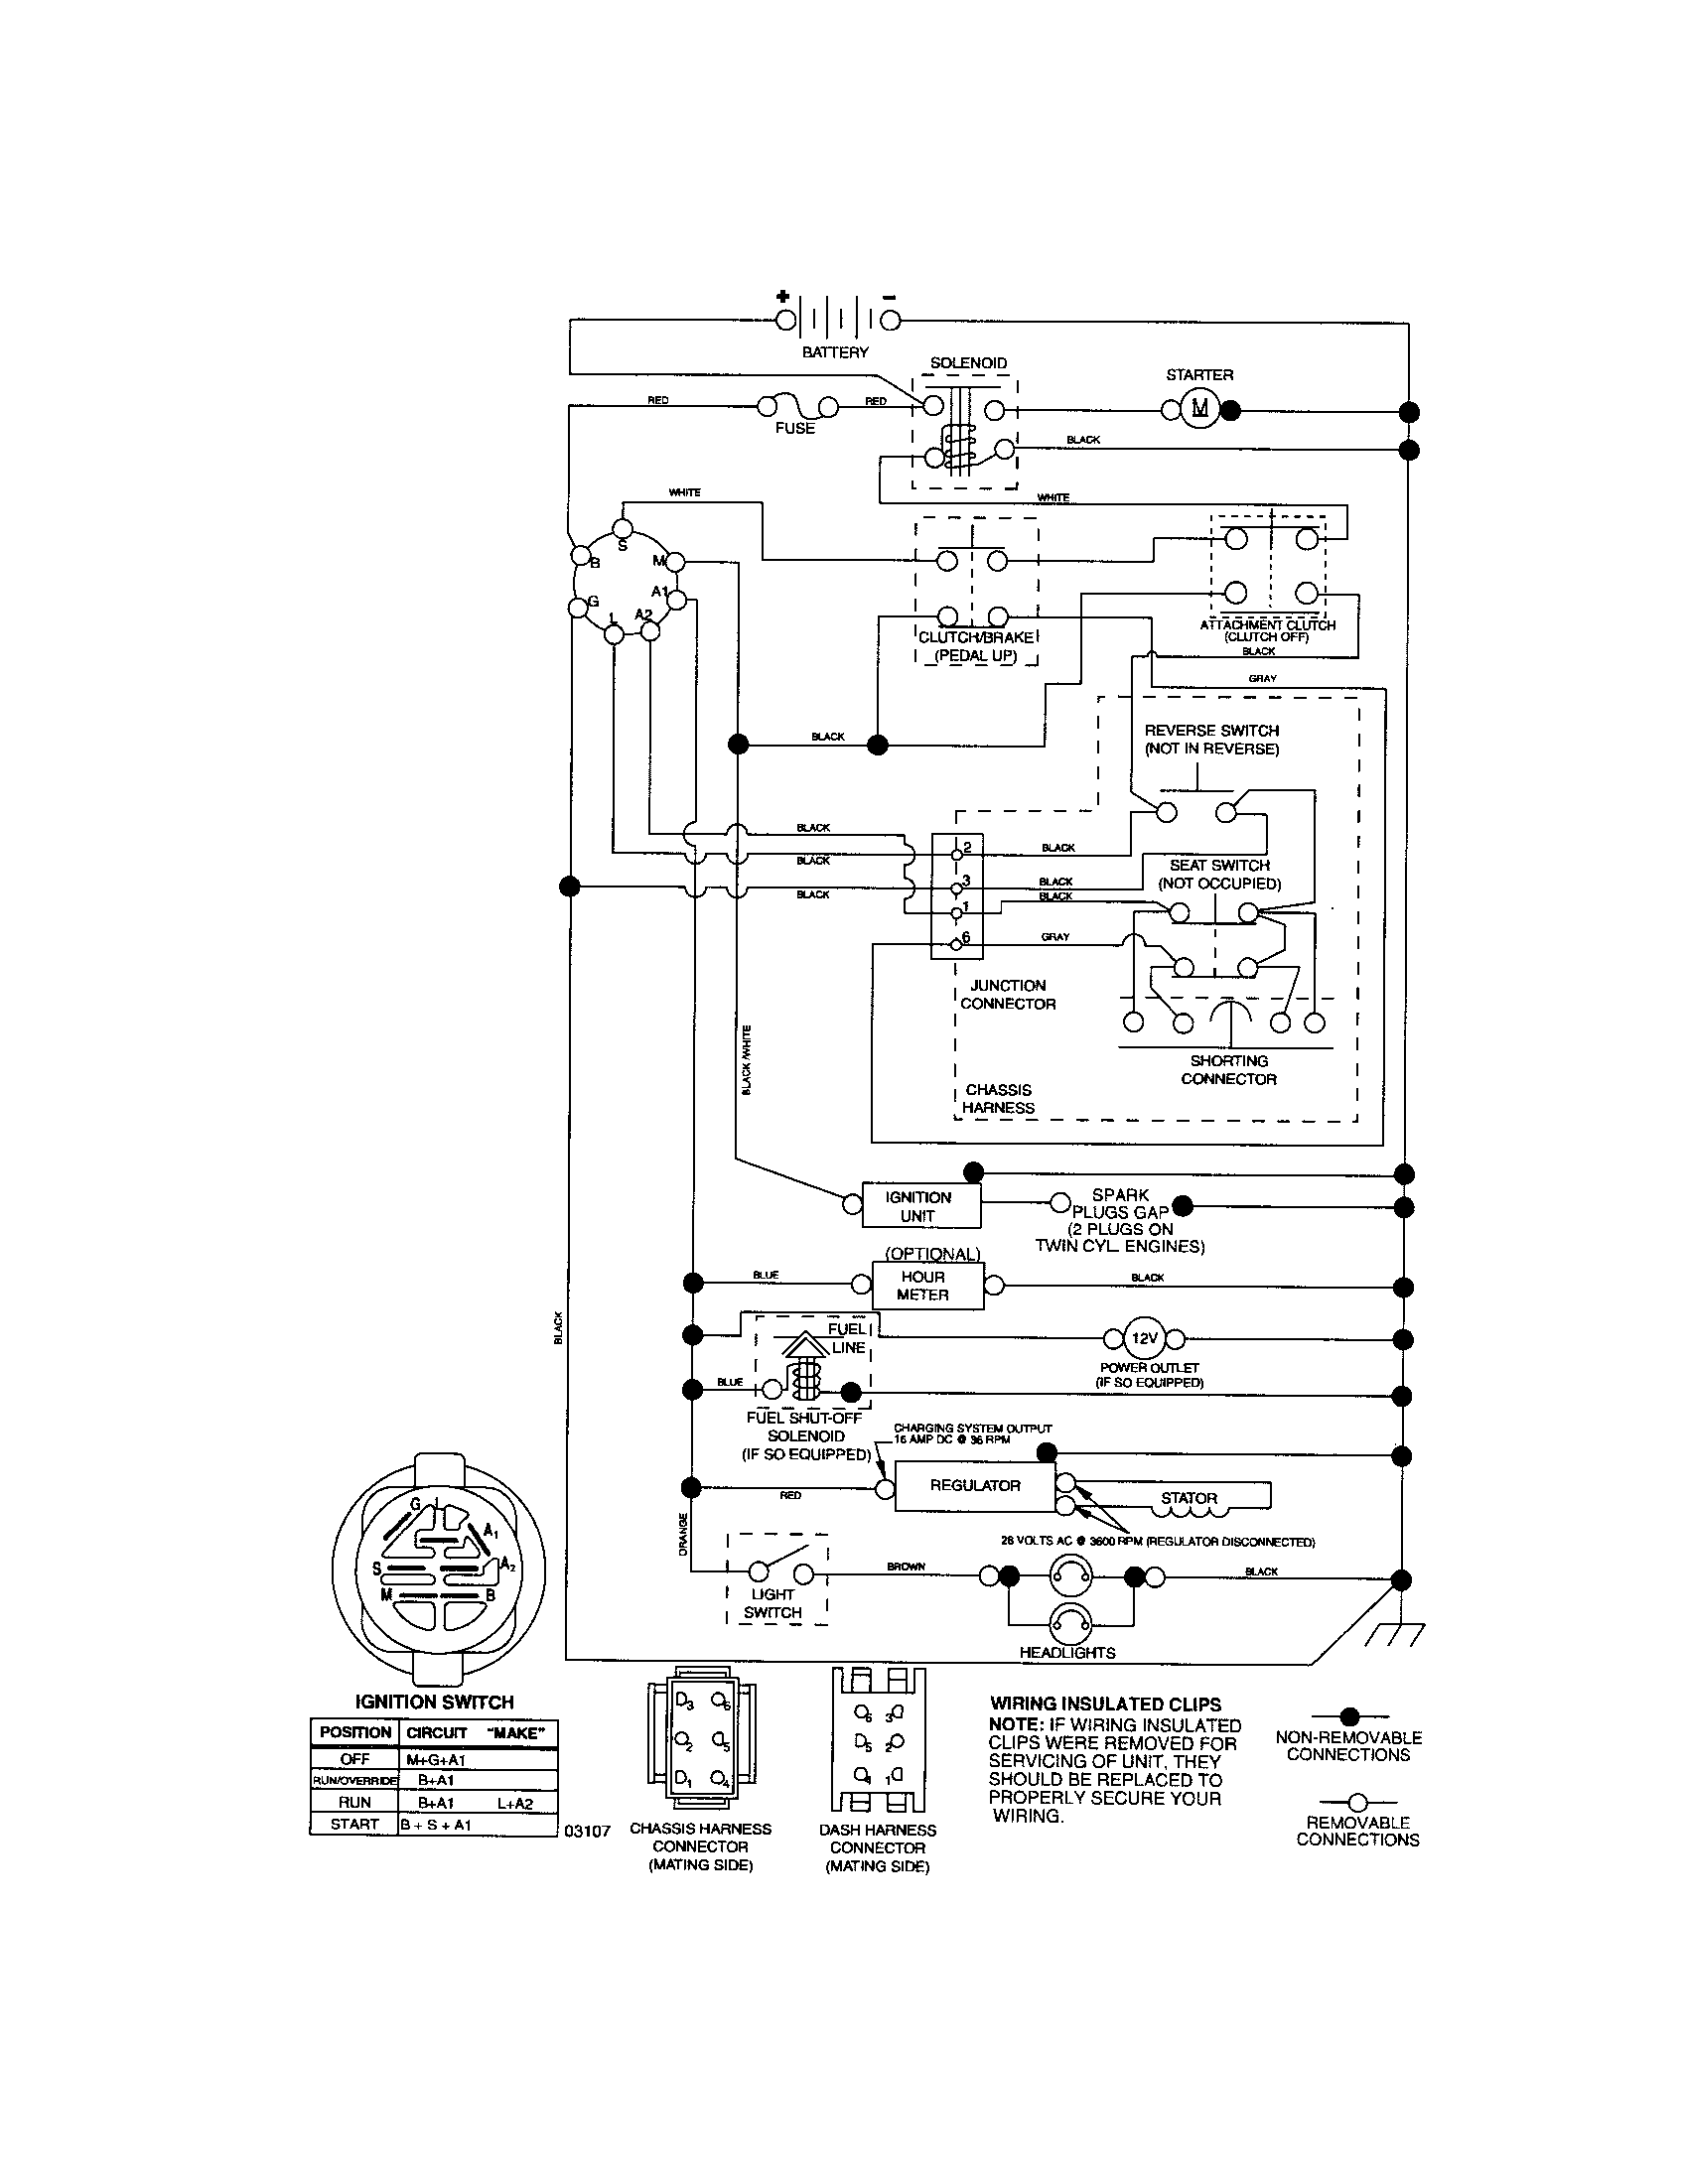 Craftsman Riding Mower Electrical Diagram Wiring. Craftsman Riding Mower Electrical Diagram Wiring Lawn I Need One For. Wiring. Magic Safety Switch Wiring Diagram At Scoala.co